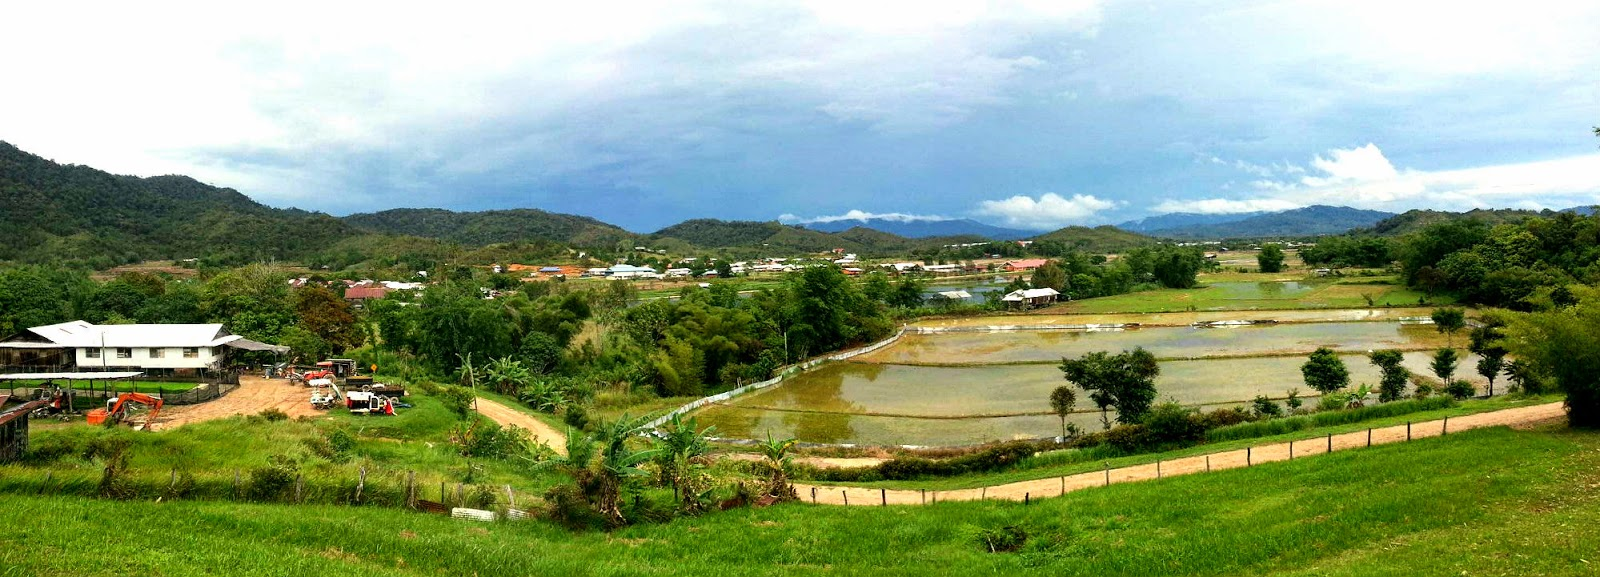 Postcards from Bario